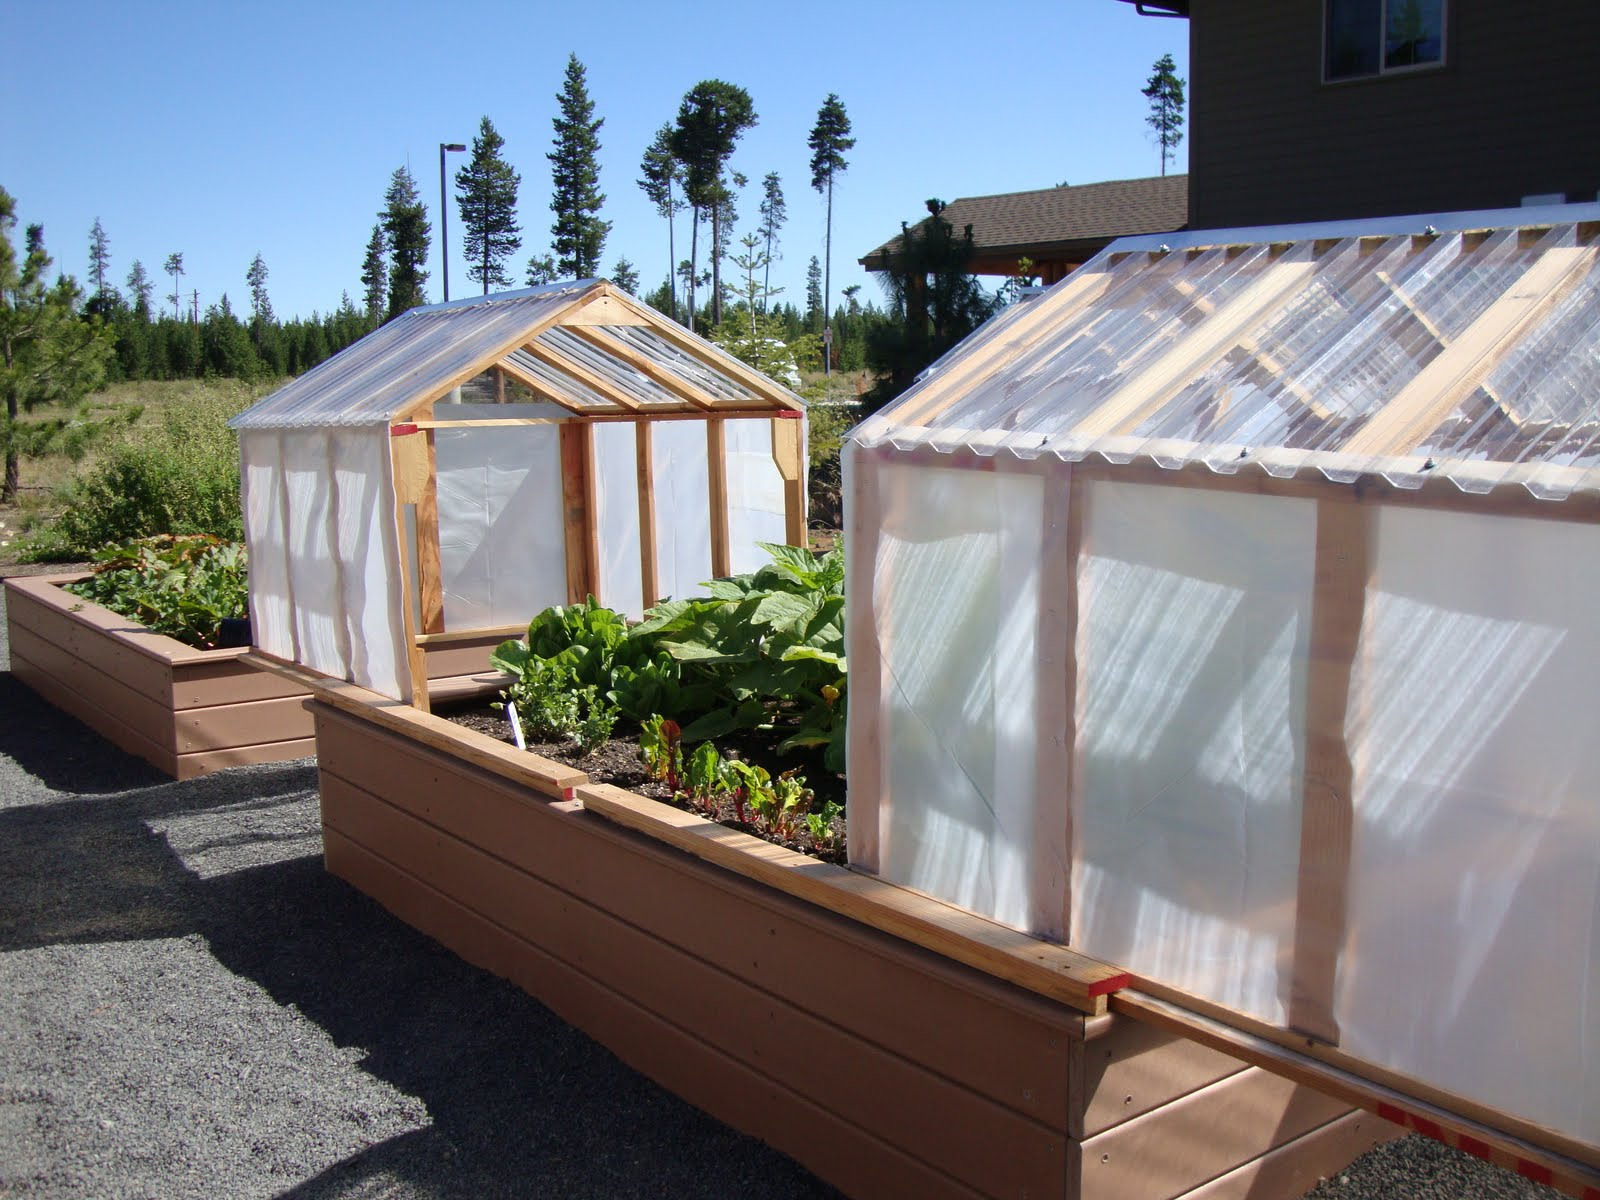 danger garden: Mini-greenhouses or raised beds? Both!